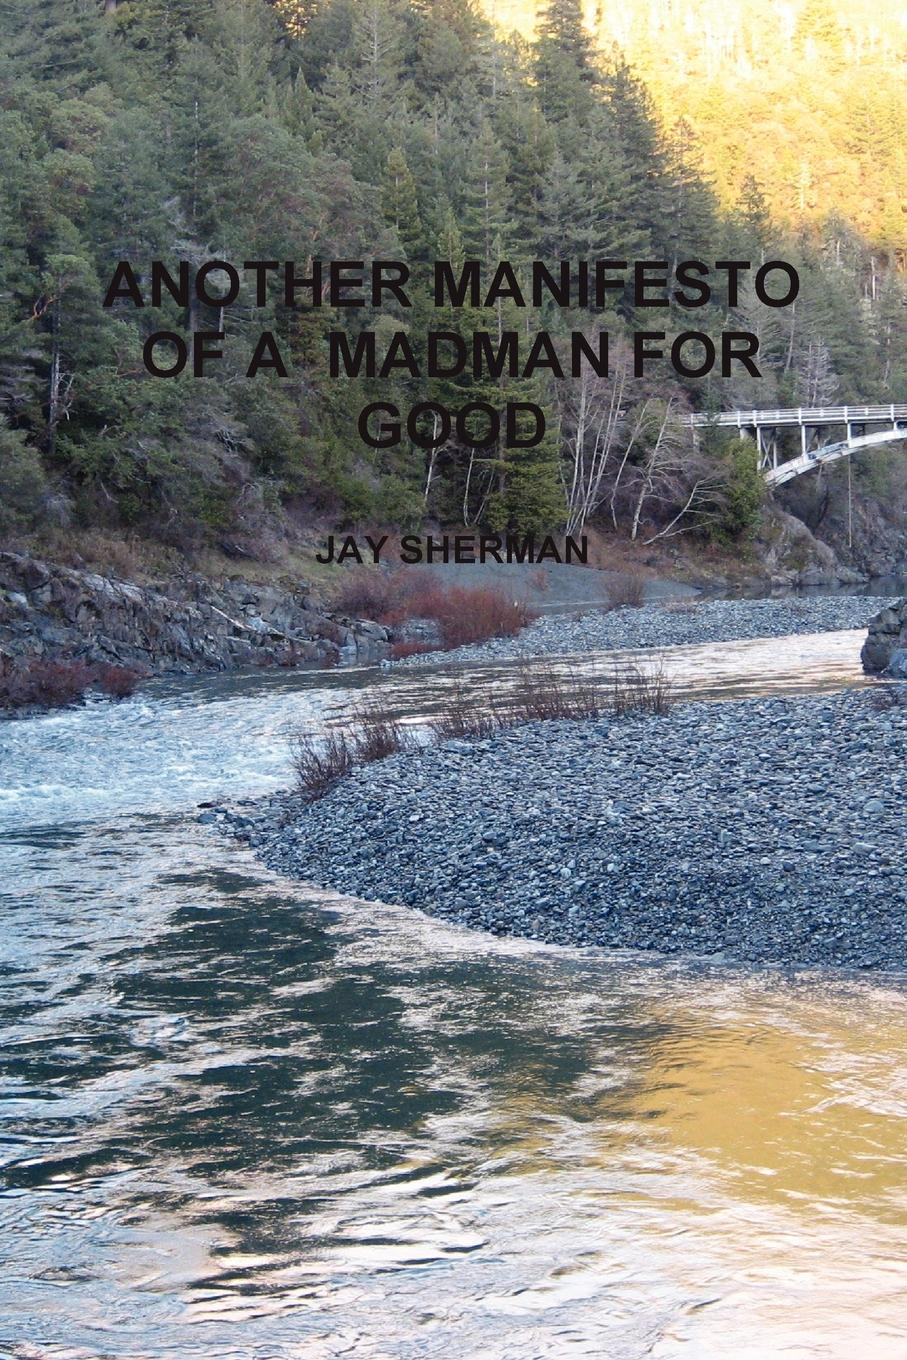 JAY SHERMAN ANOTHER MANIFESTO OF A MADMAN FOR GOOD then we come to the end